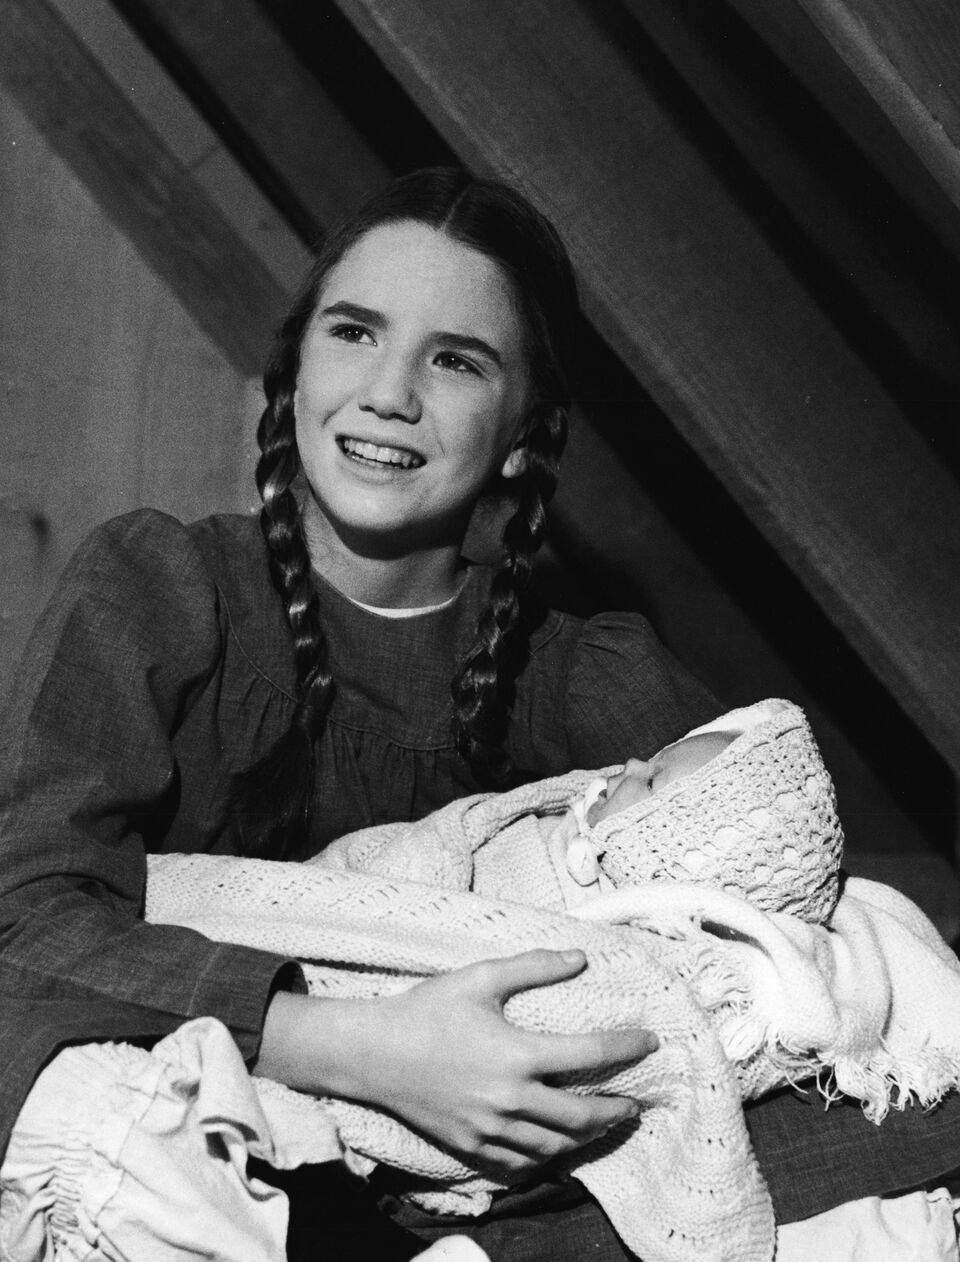 """Melissa Gilbert holds a baby doll in a scene from """"The Little House on the Prairie.""""   Source: Getty Images"""